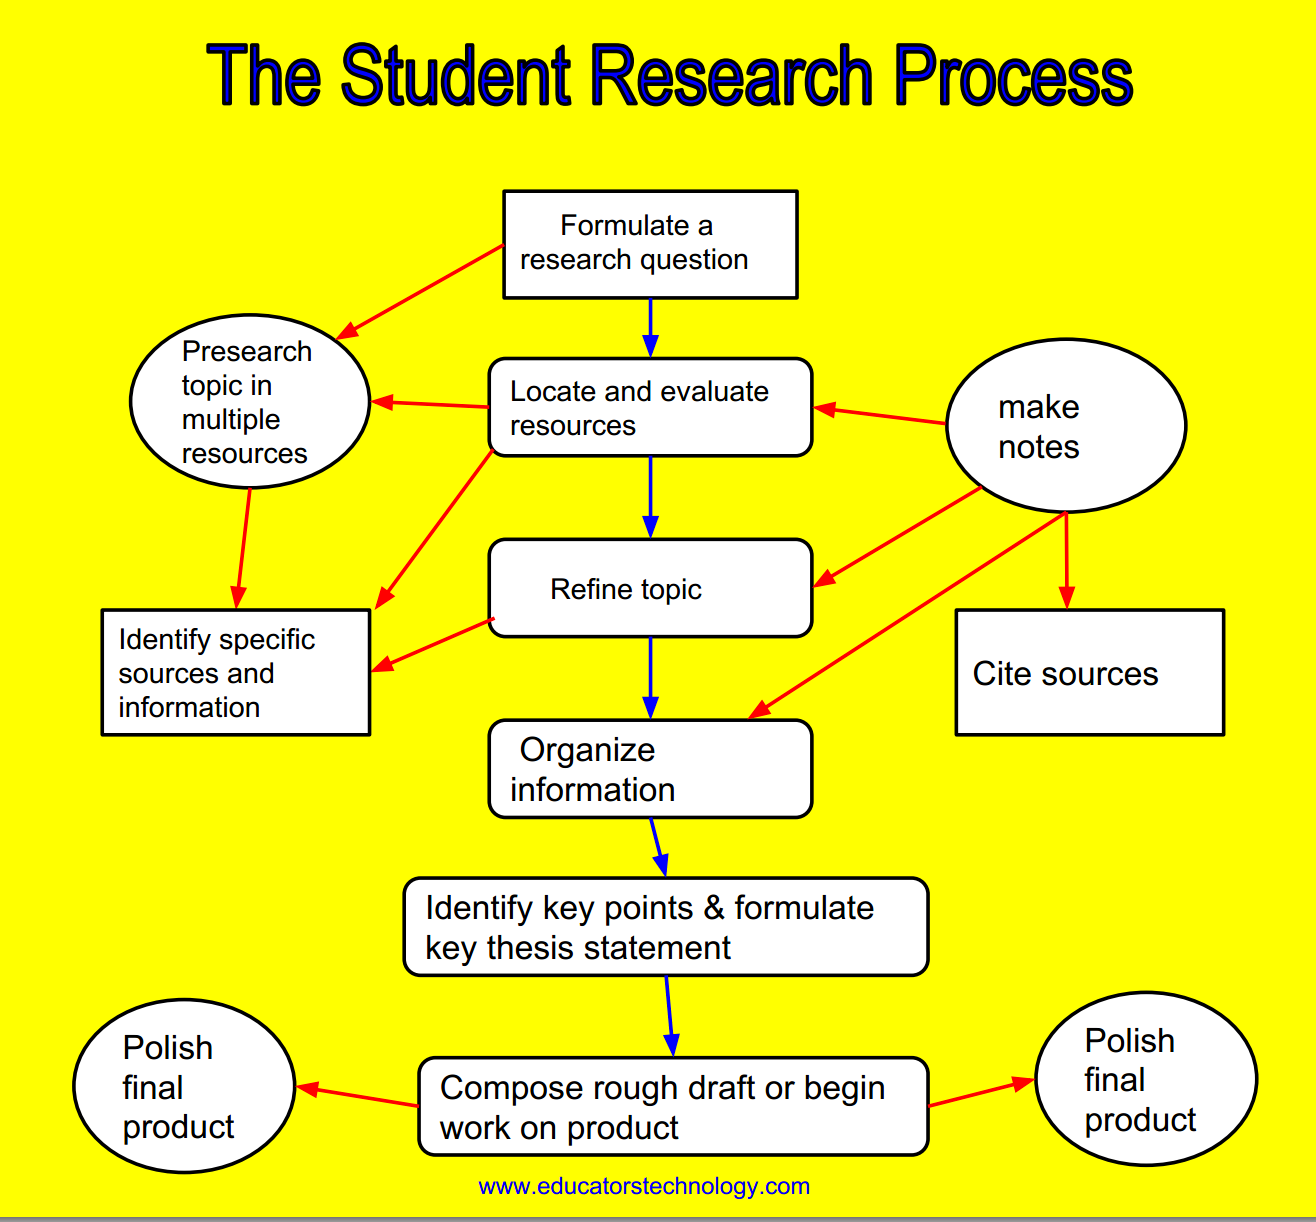 The Student Research